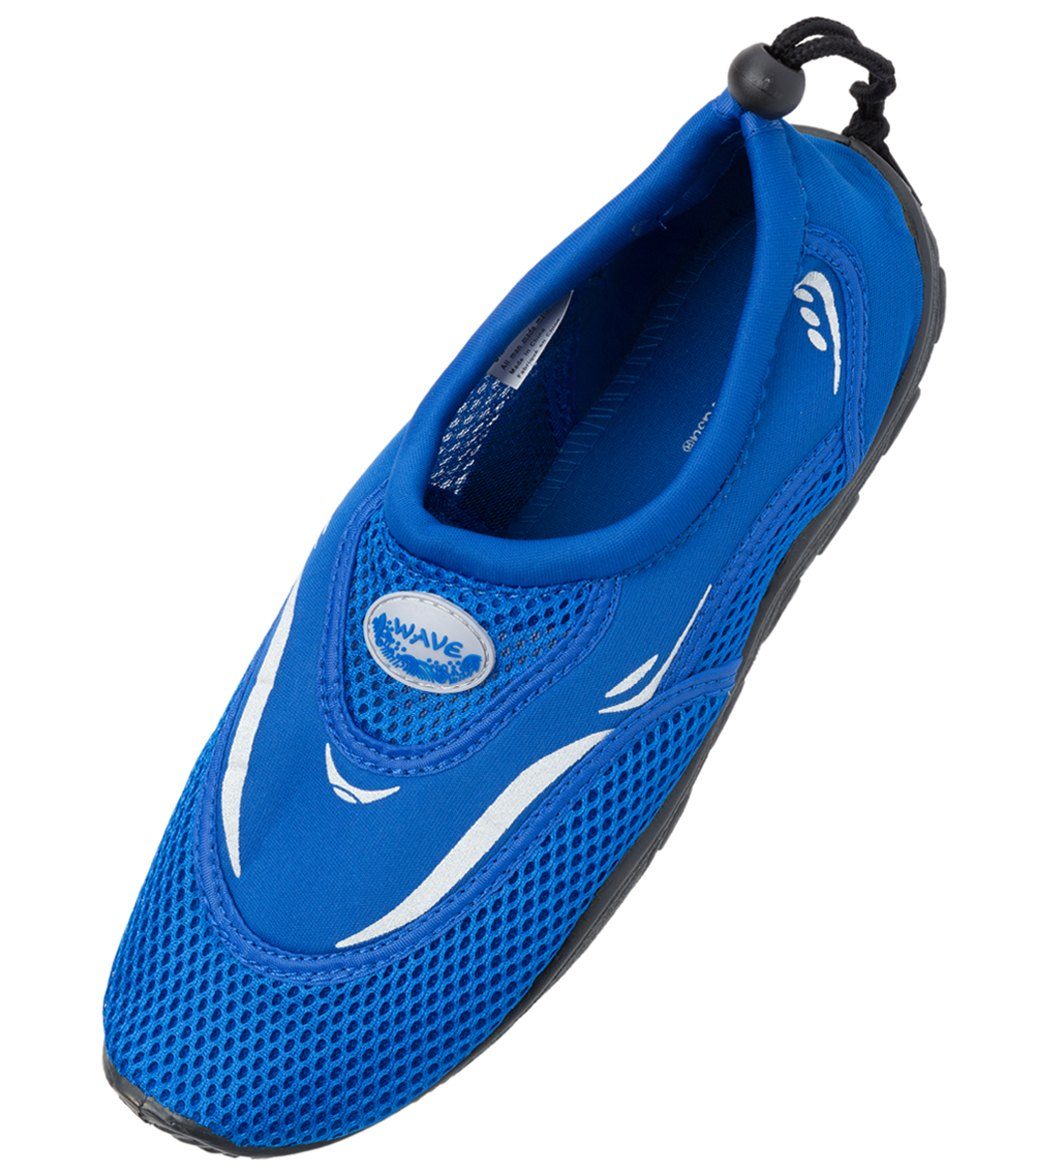 Easy USA Men's Water Shoes at SwimOutlet.com